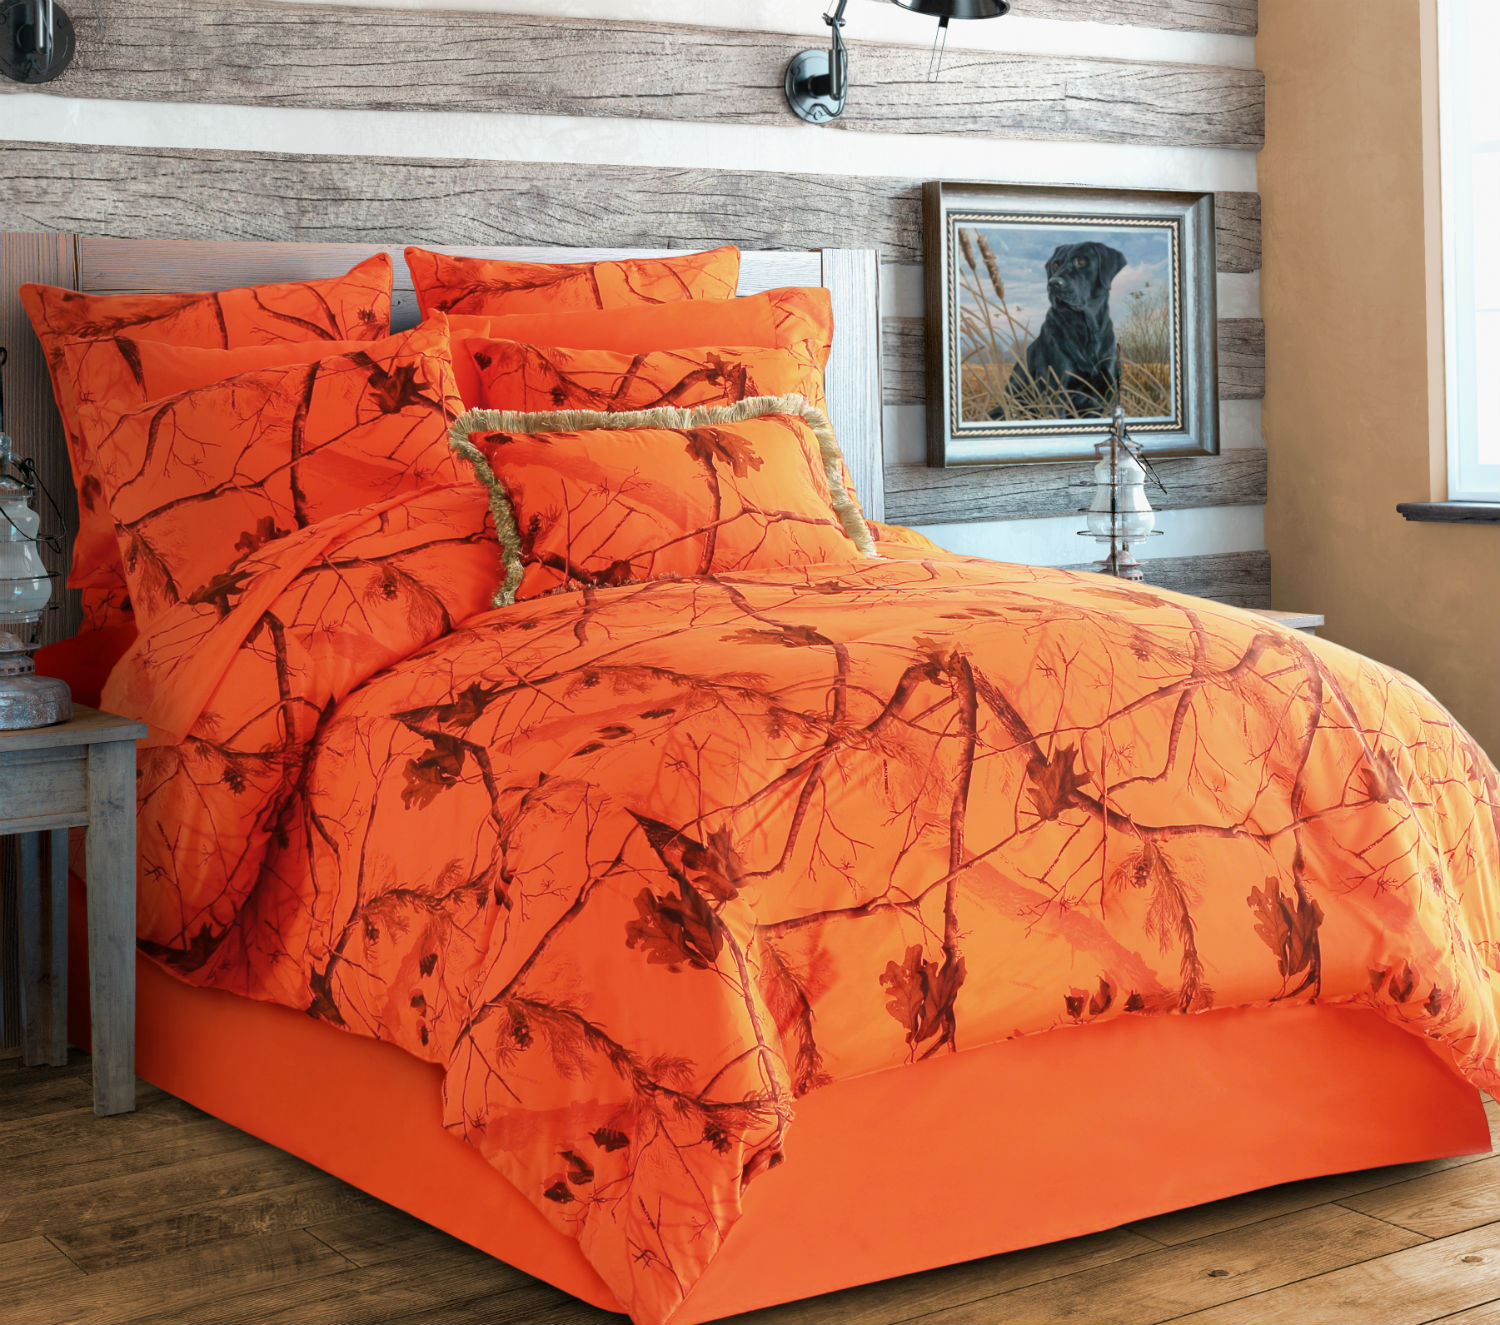 Realtree Ap Blaze By Carstens Lodge Bedding Beddingsuperstore Com